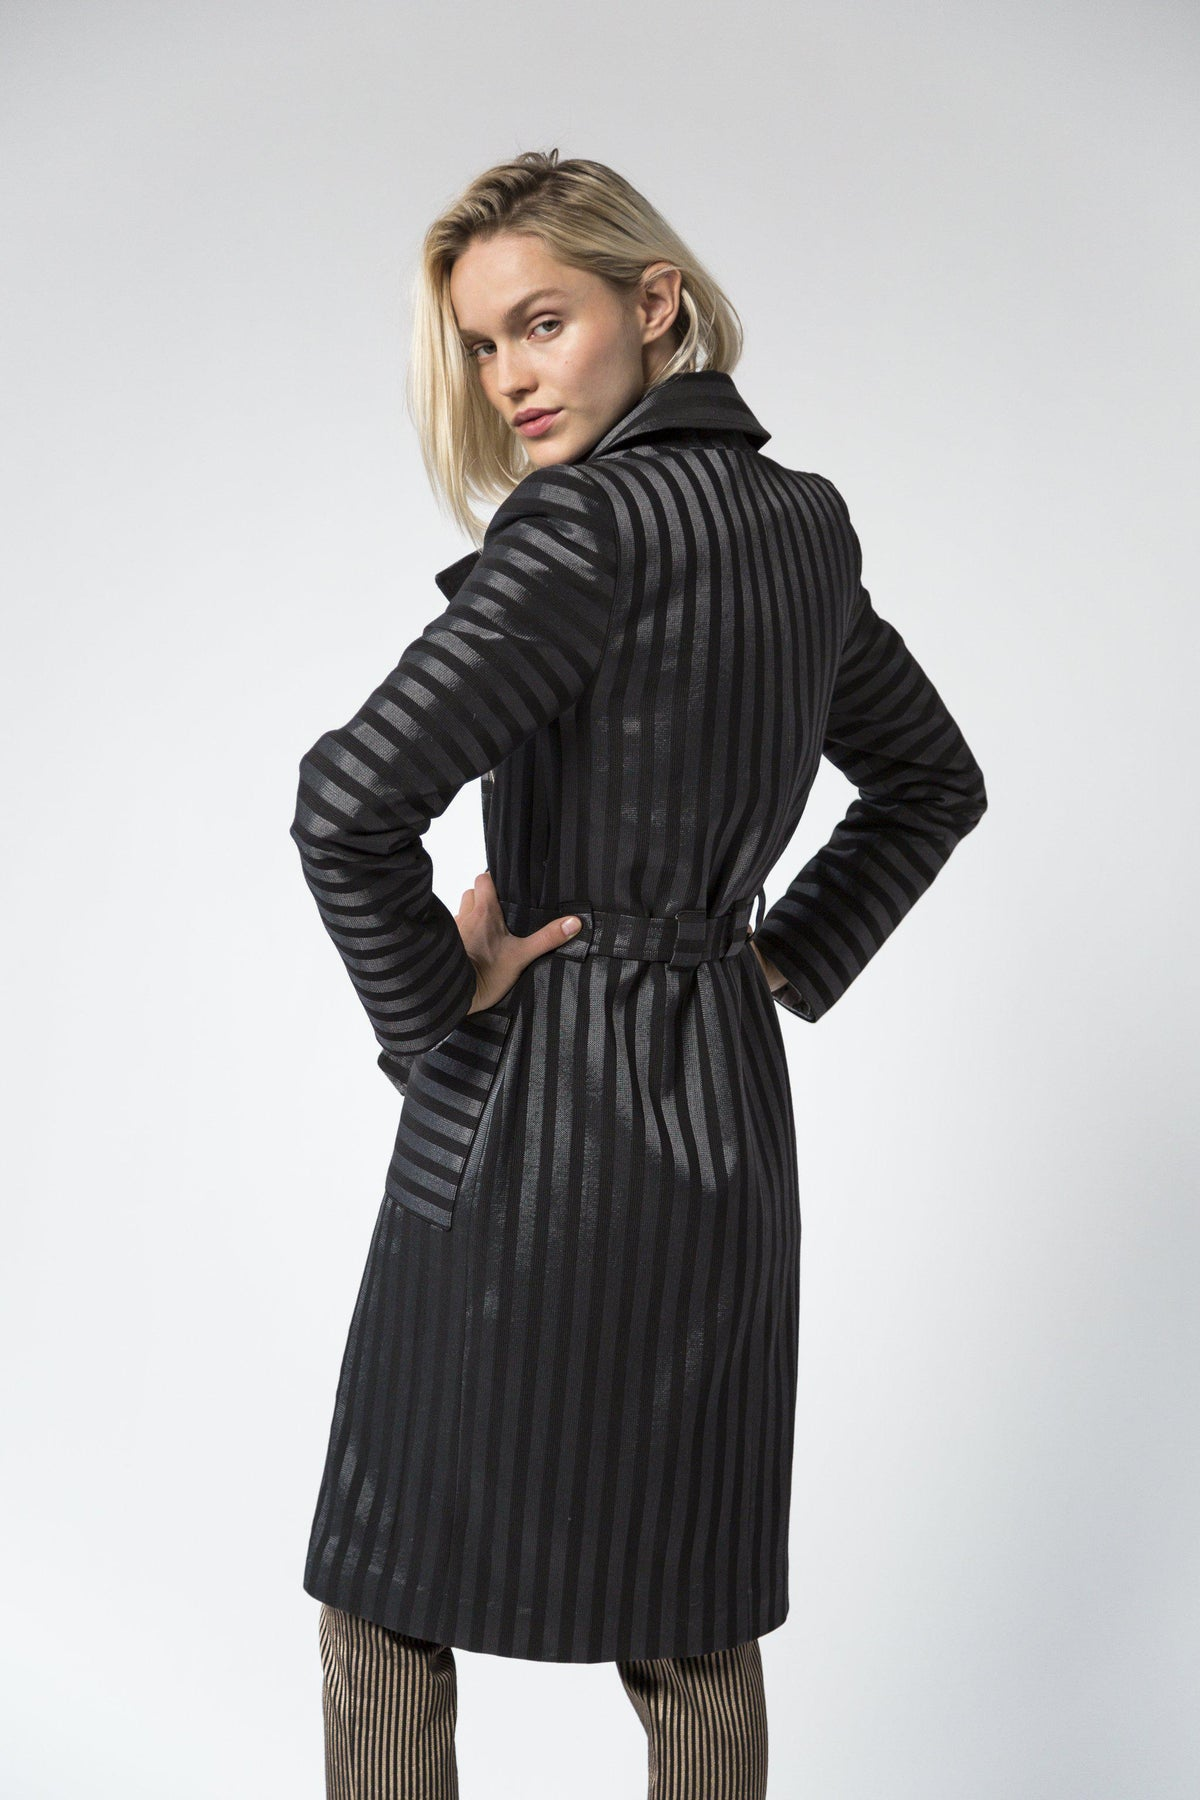 Hallow trench coat in grey stripes